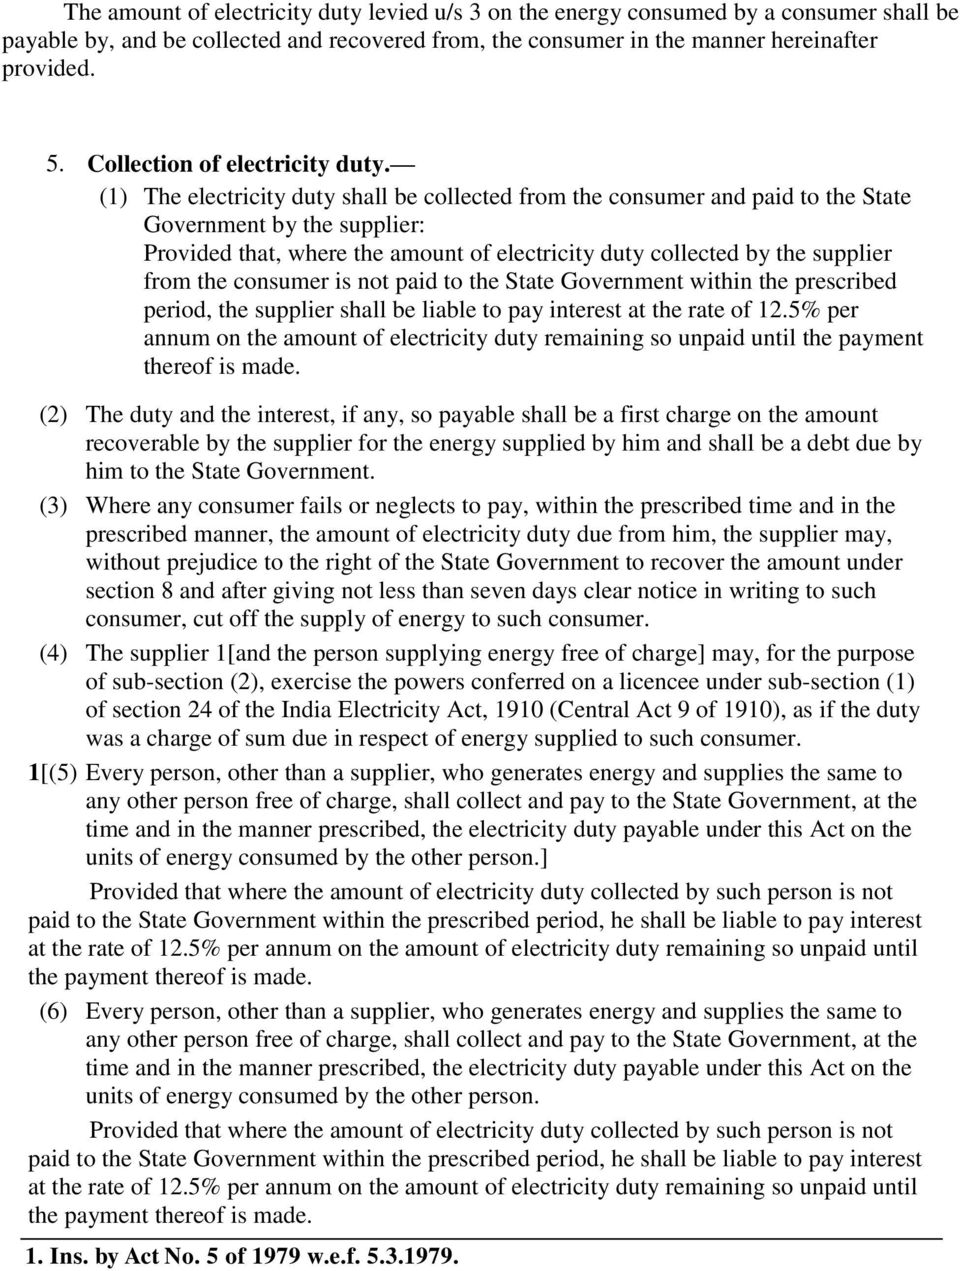 (1) The electricity duty shall be collected from the consumer and paid to the State Government by the supplier: Provided that, where the amount of electricity duty collected by the supplier from the